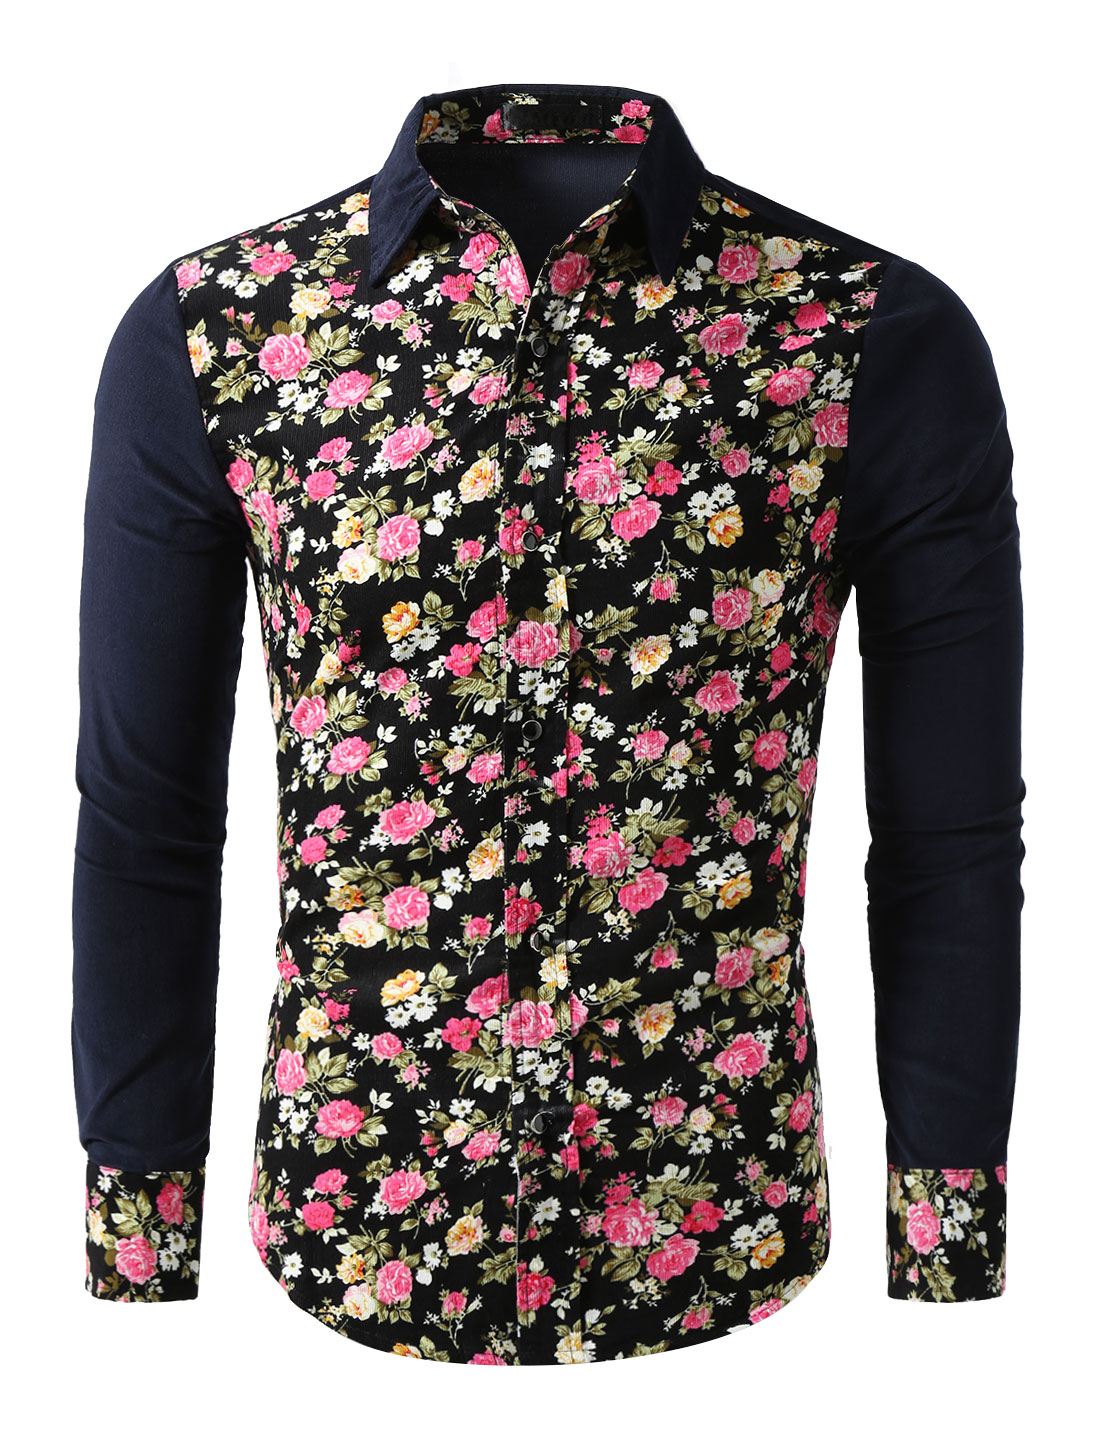 Men Floral Print Point Collar Long Sleeve Button Down Corduroy Shirt Navy Blue L